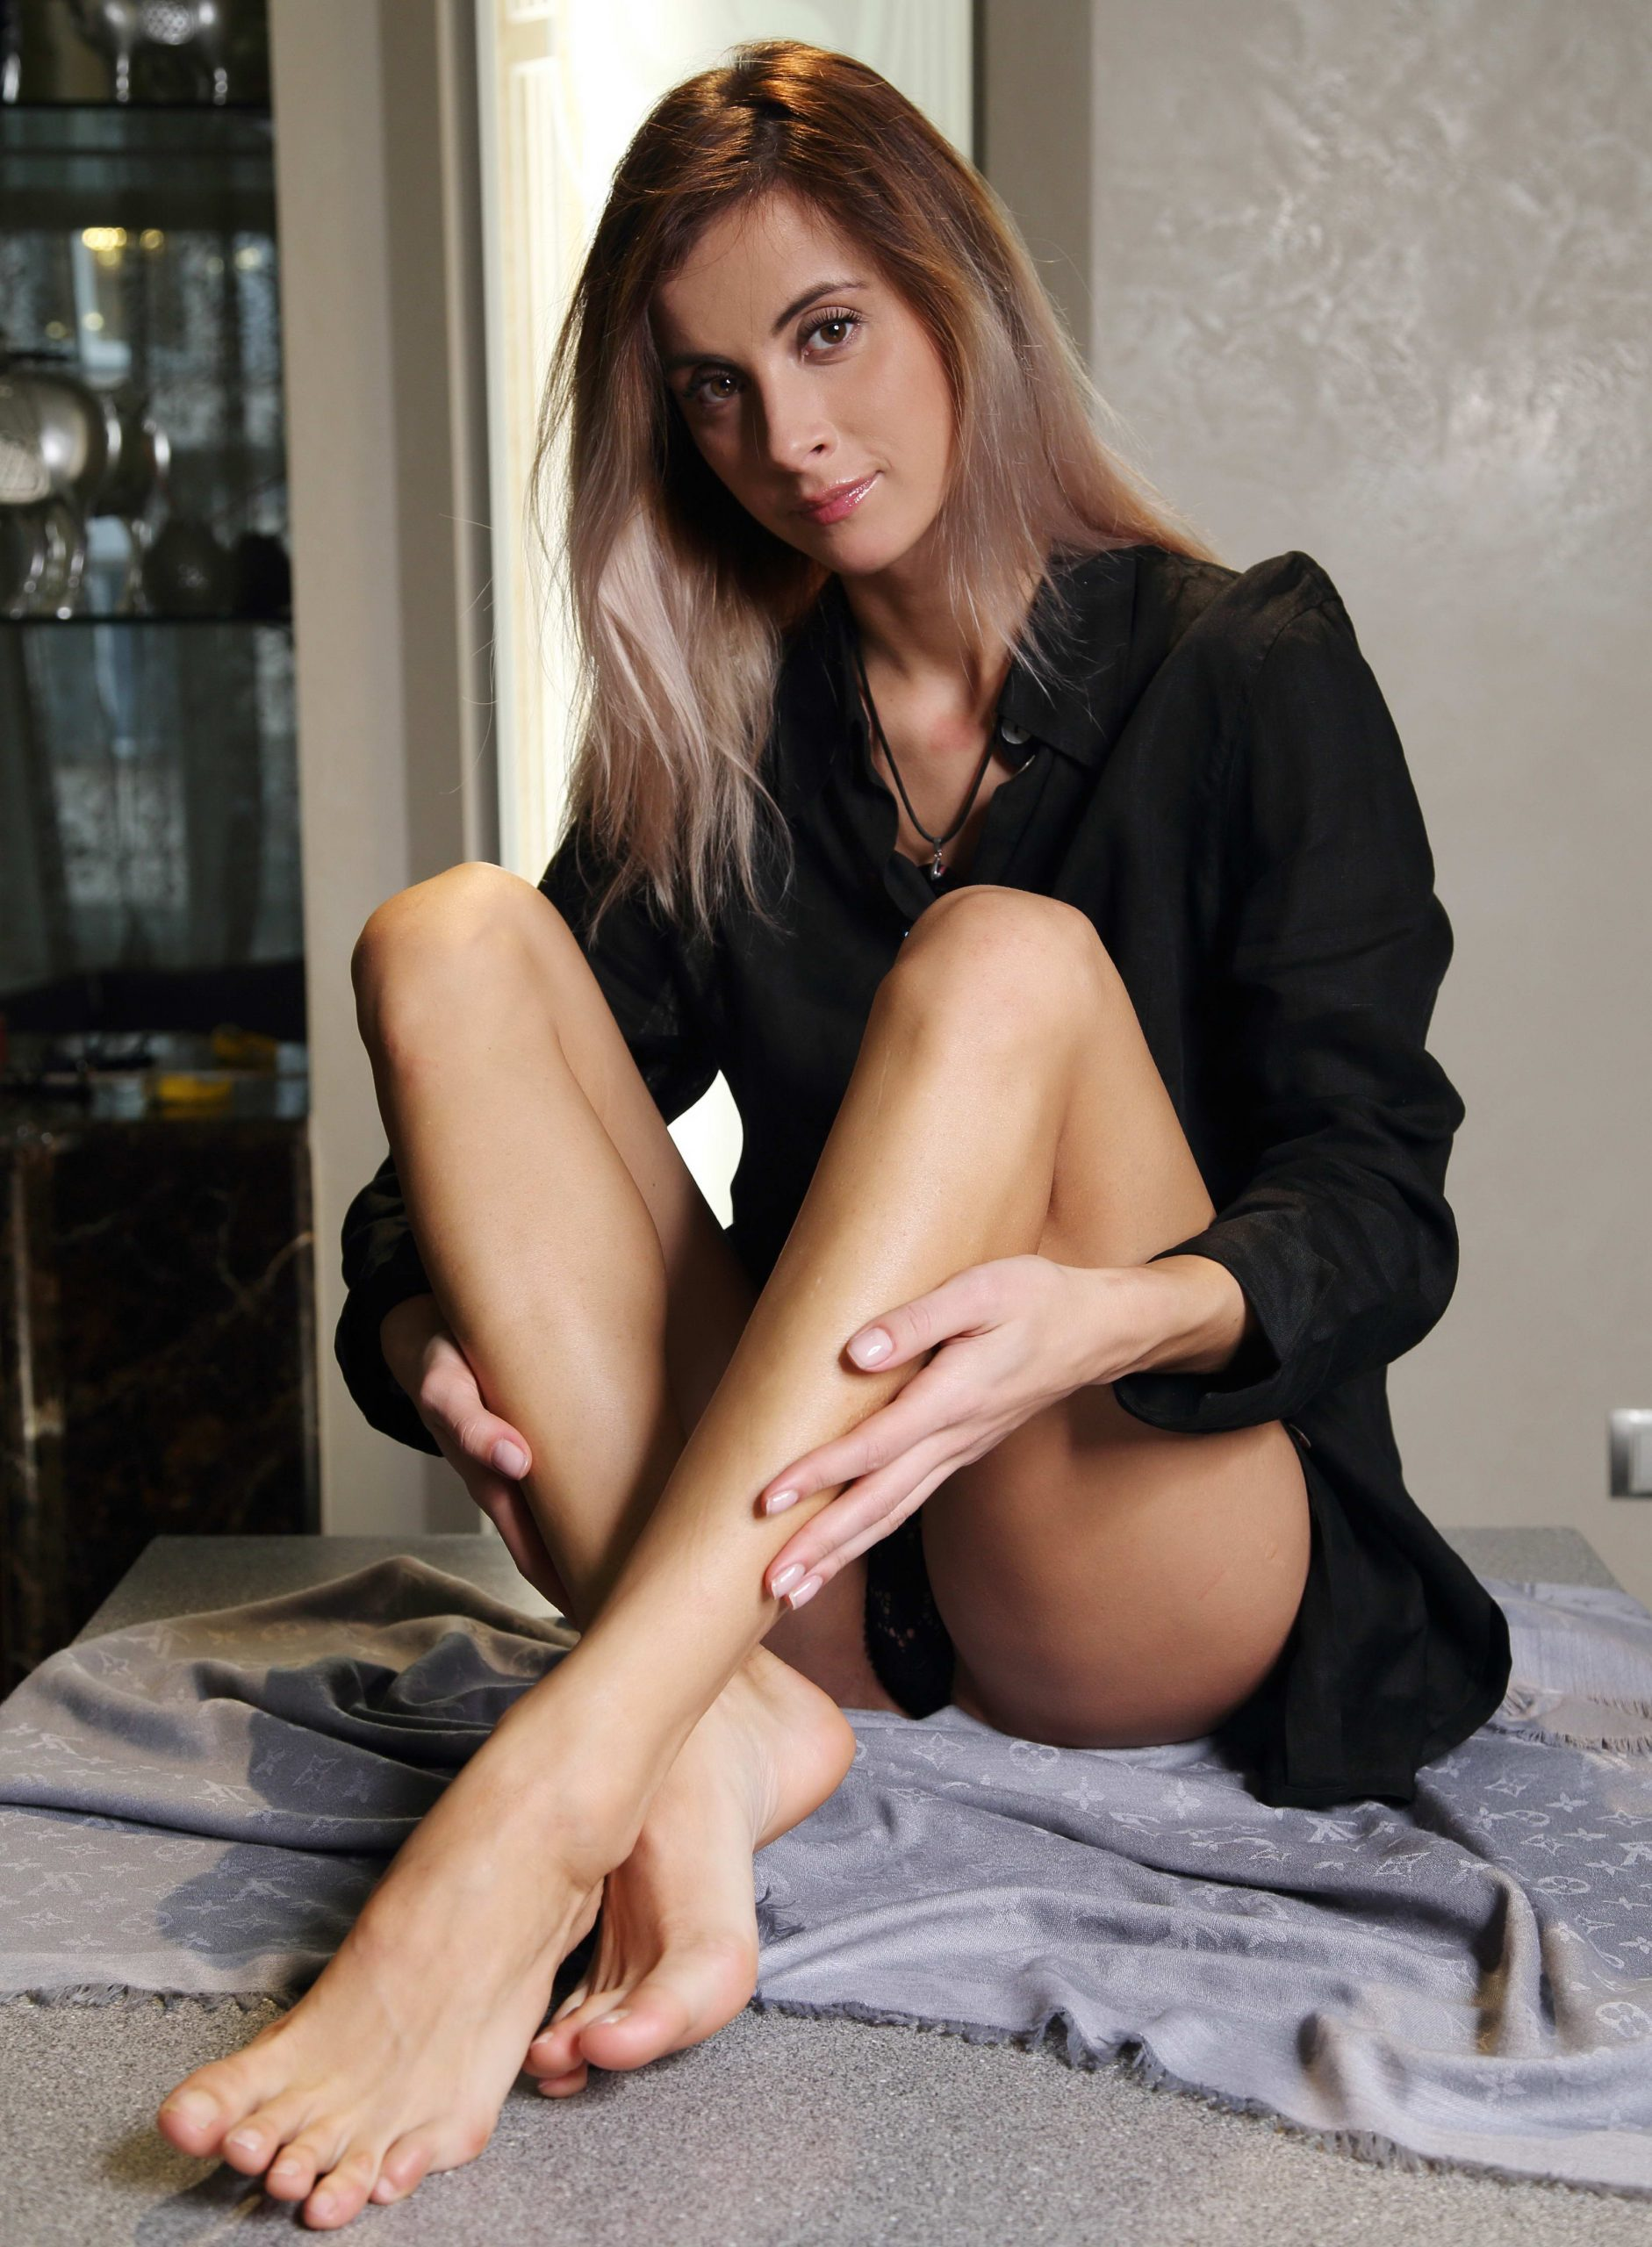 Classy Young Girl With Sexy Legs